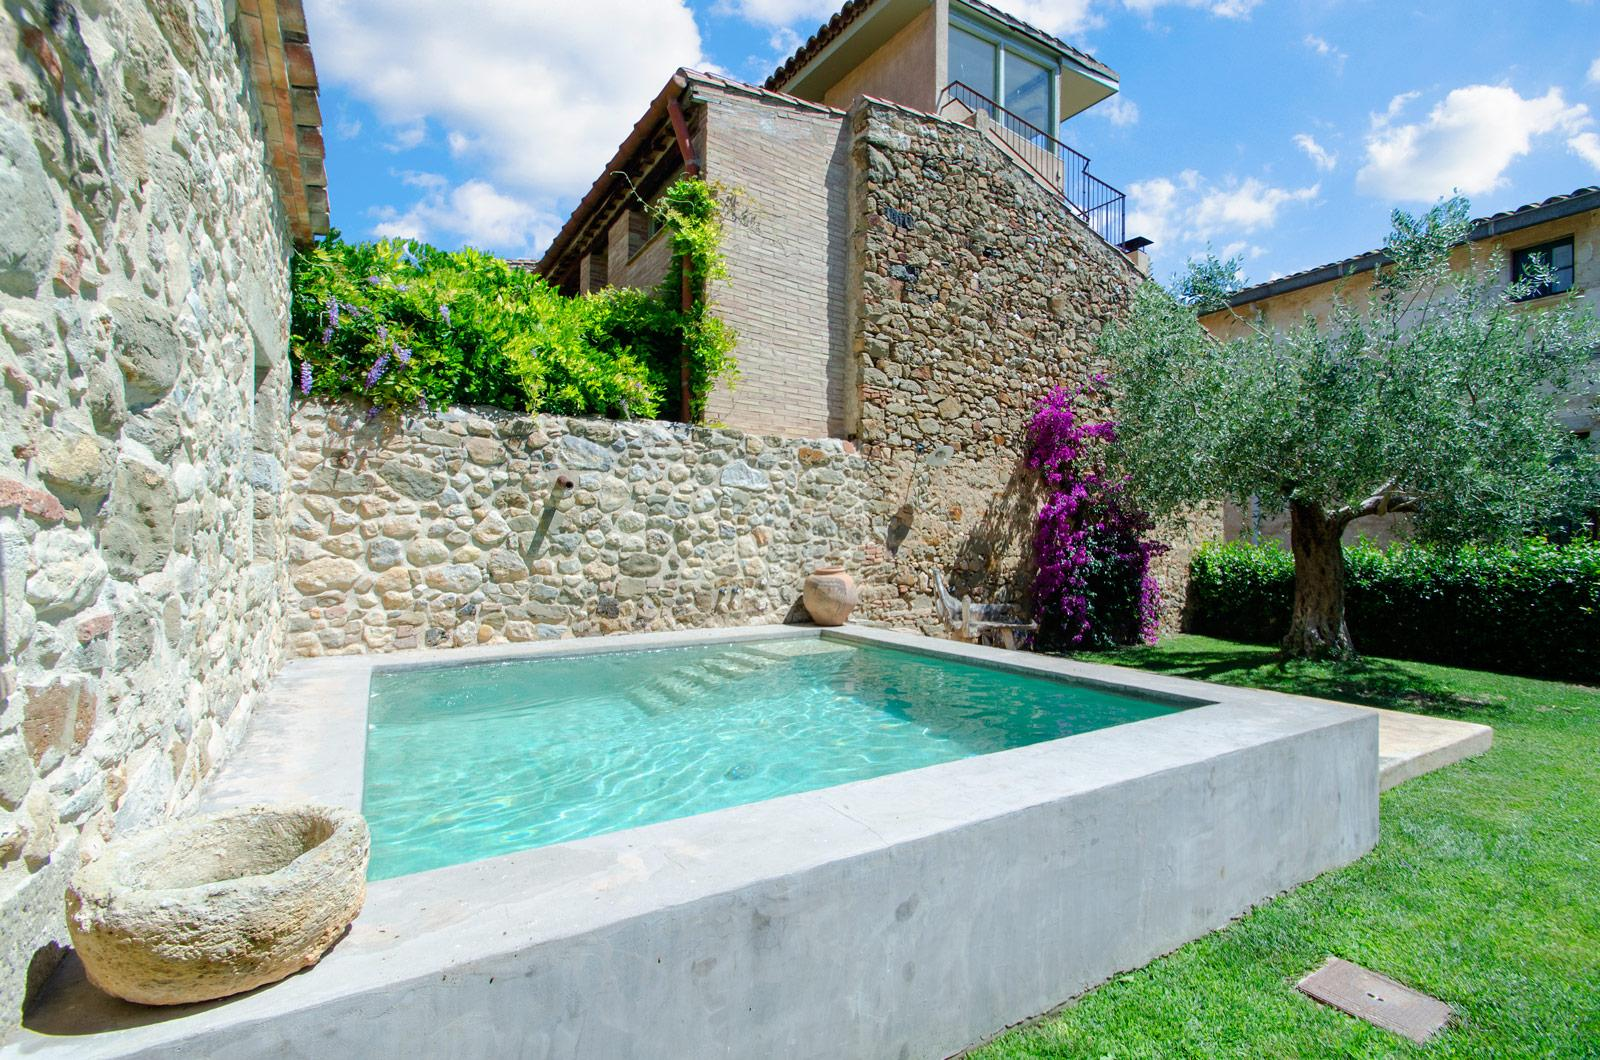 3. Villa for sale in Girona - Traditional Masia, Catalonia country house, for sale in Girona